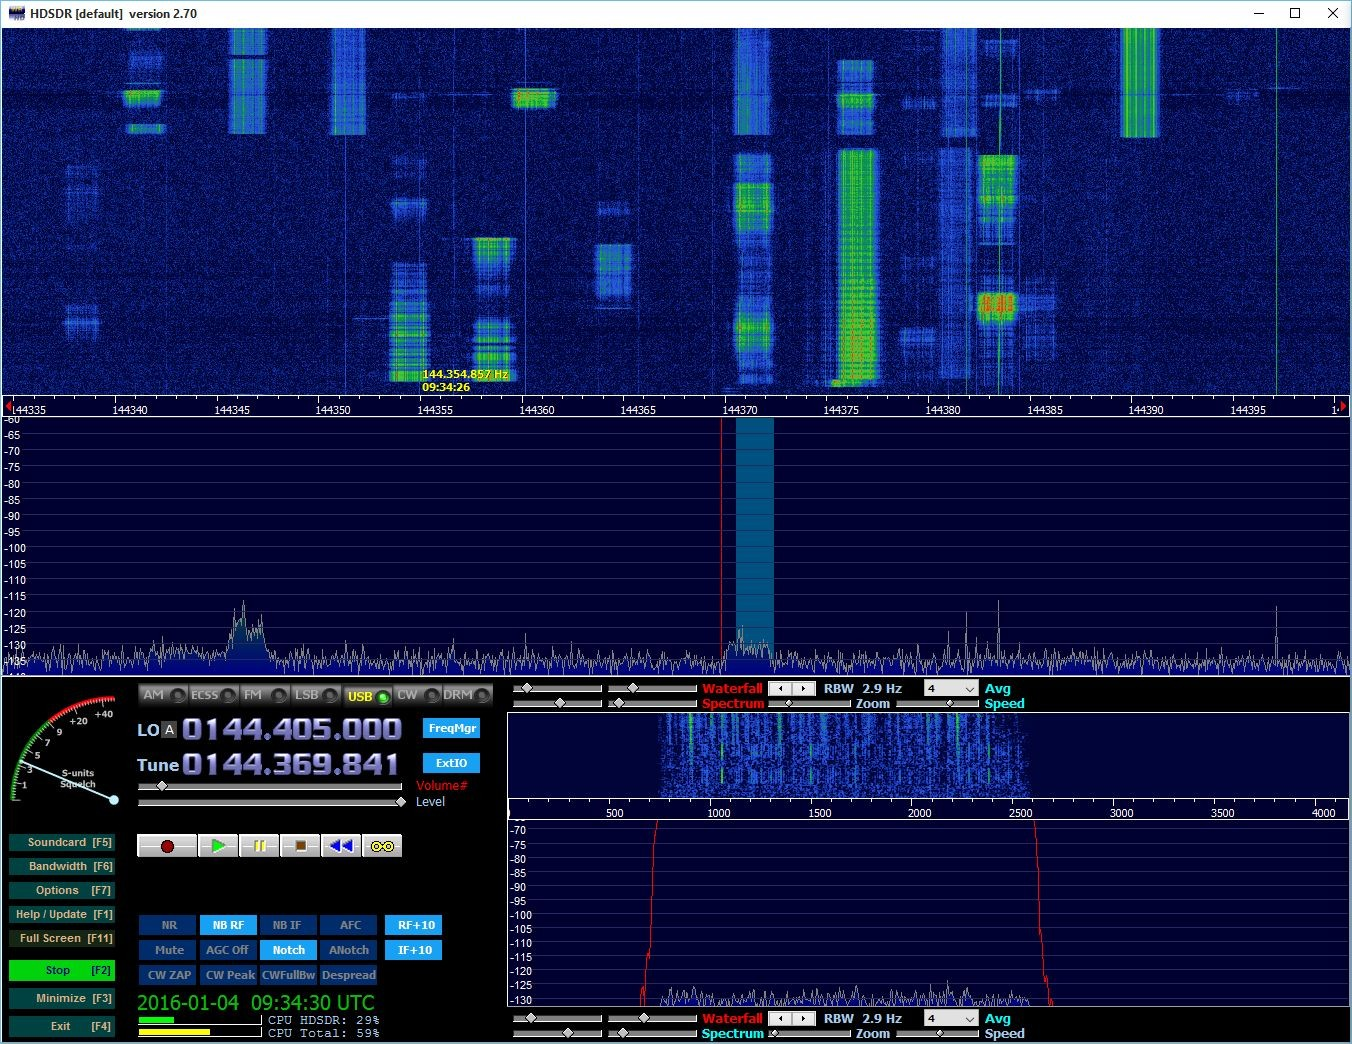 OH6KTL calling CQ on .370